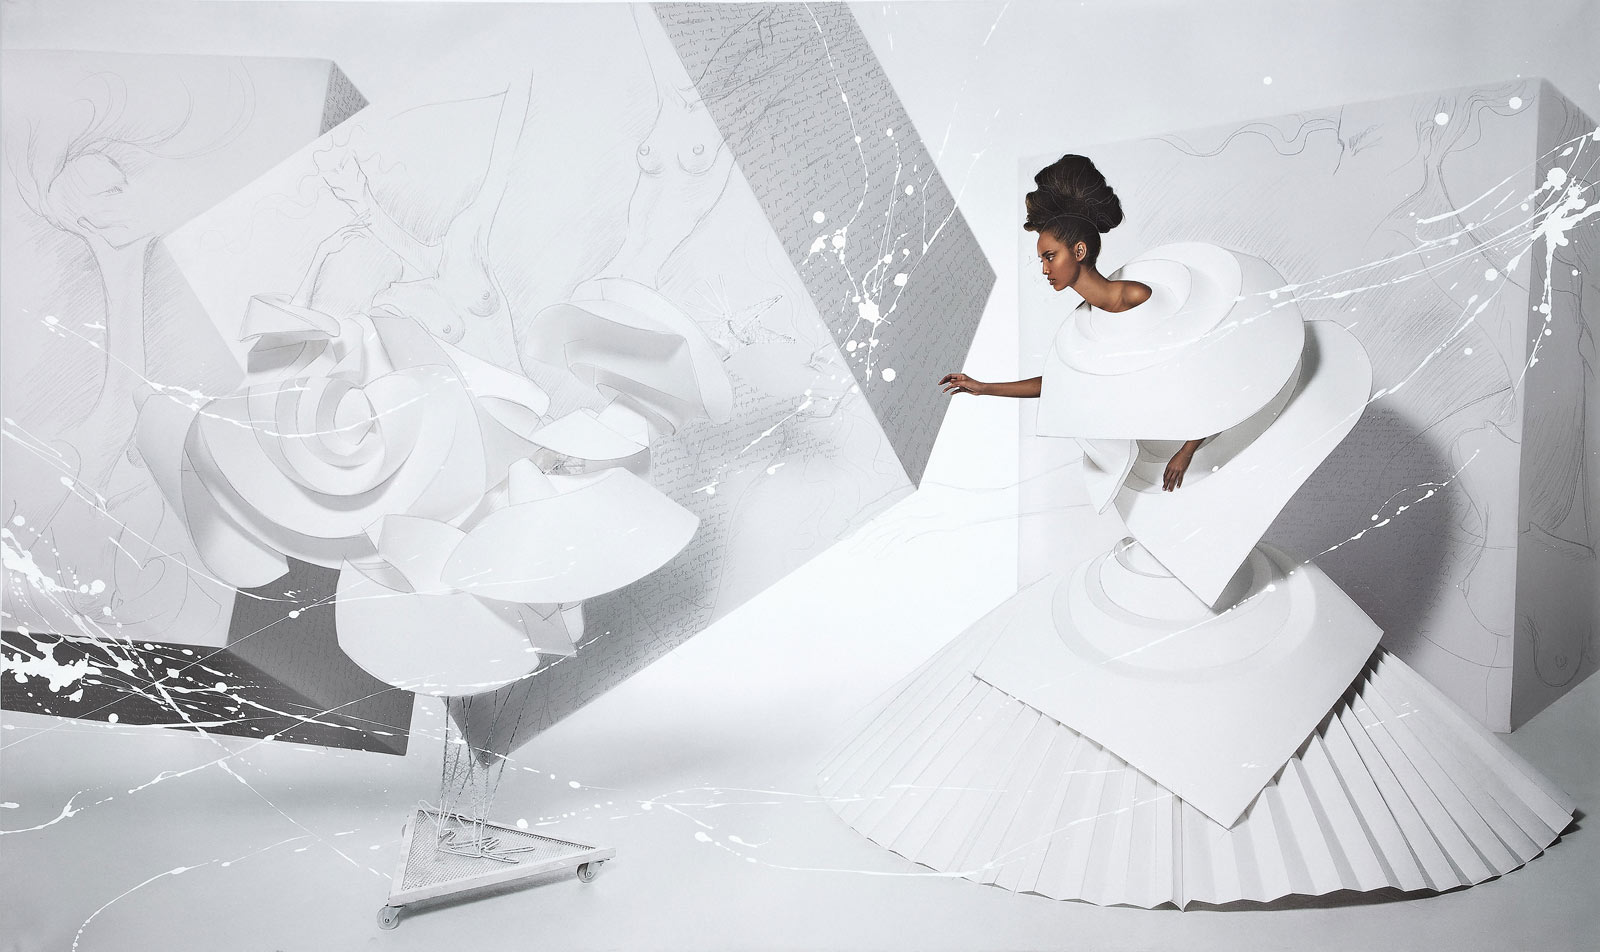 Black Girl in Origami Dress with Rooster II, 2010